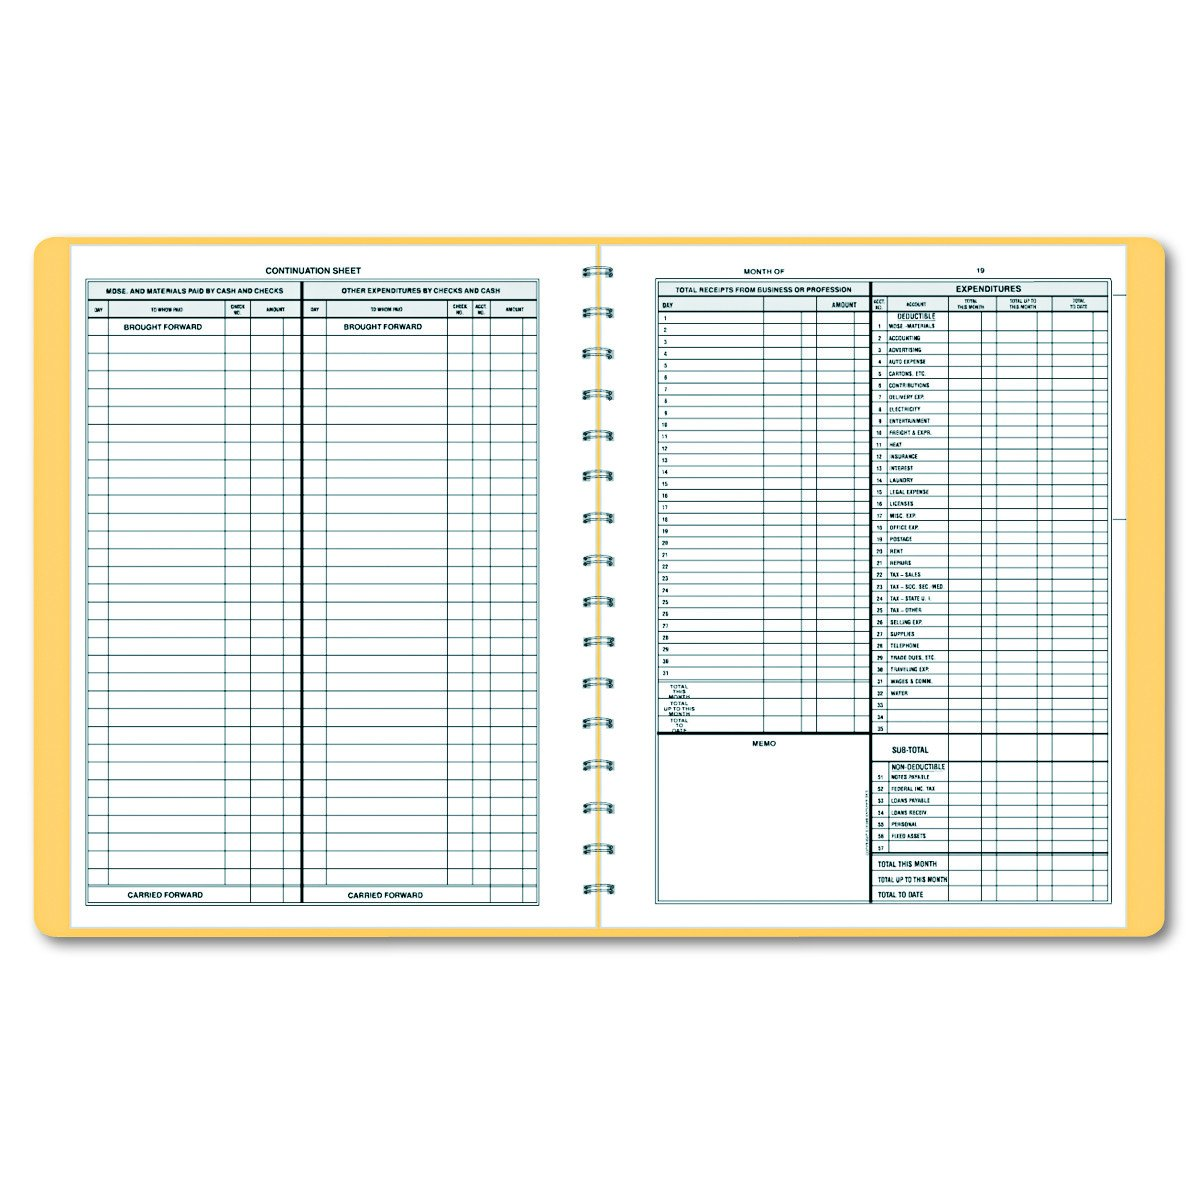 Dome 612 Bookkeeping Record, Tan Vinyl Cover, 128 Pages, 8 1/2 x 11 Pages by DomeSkin